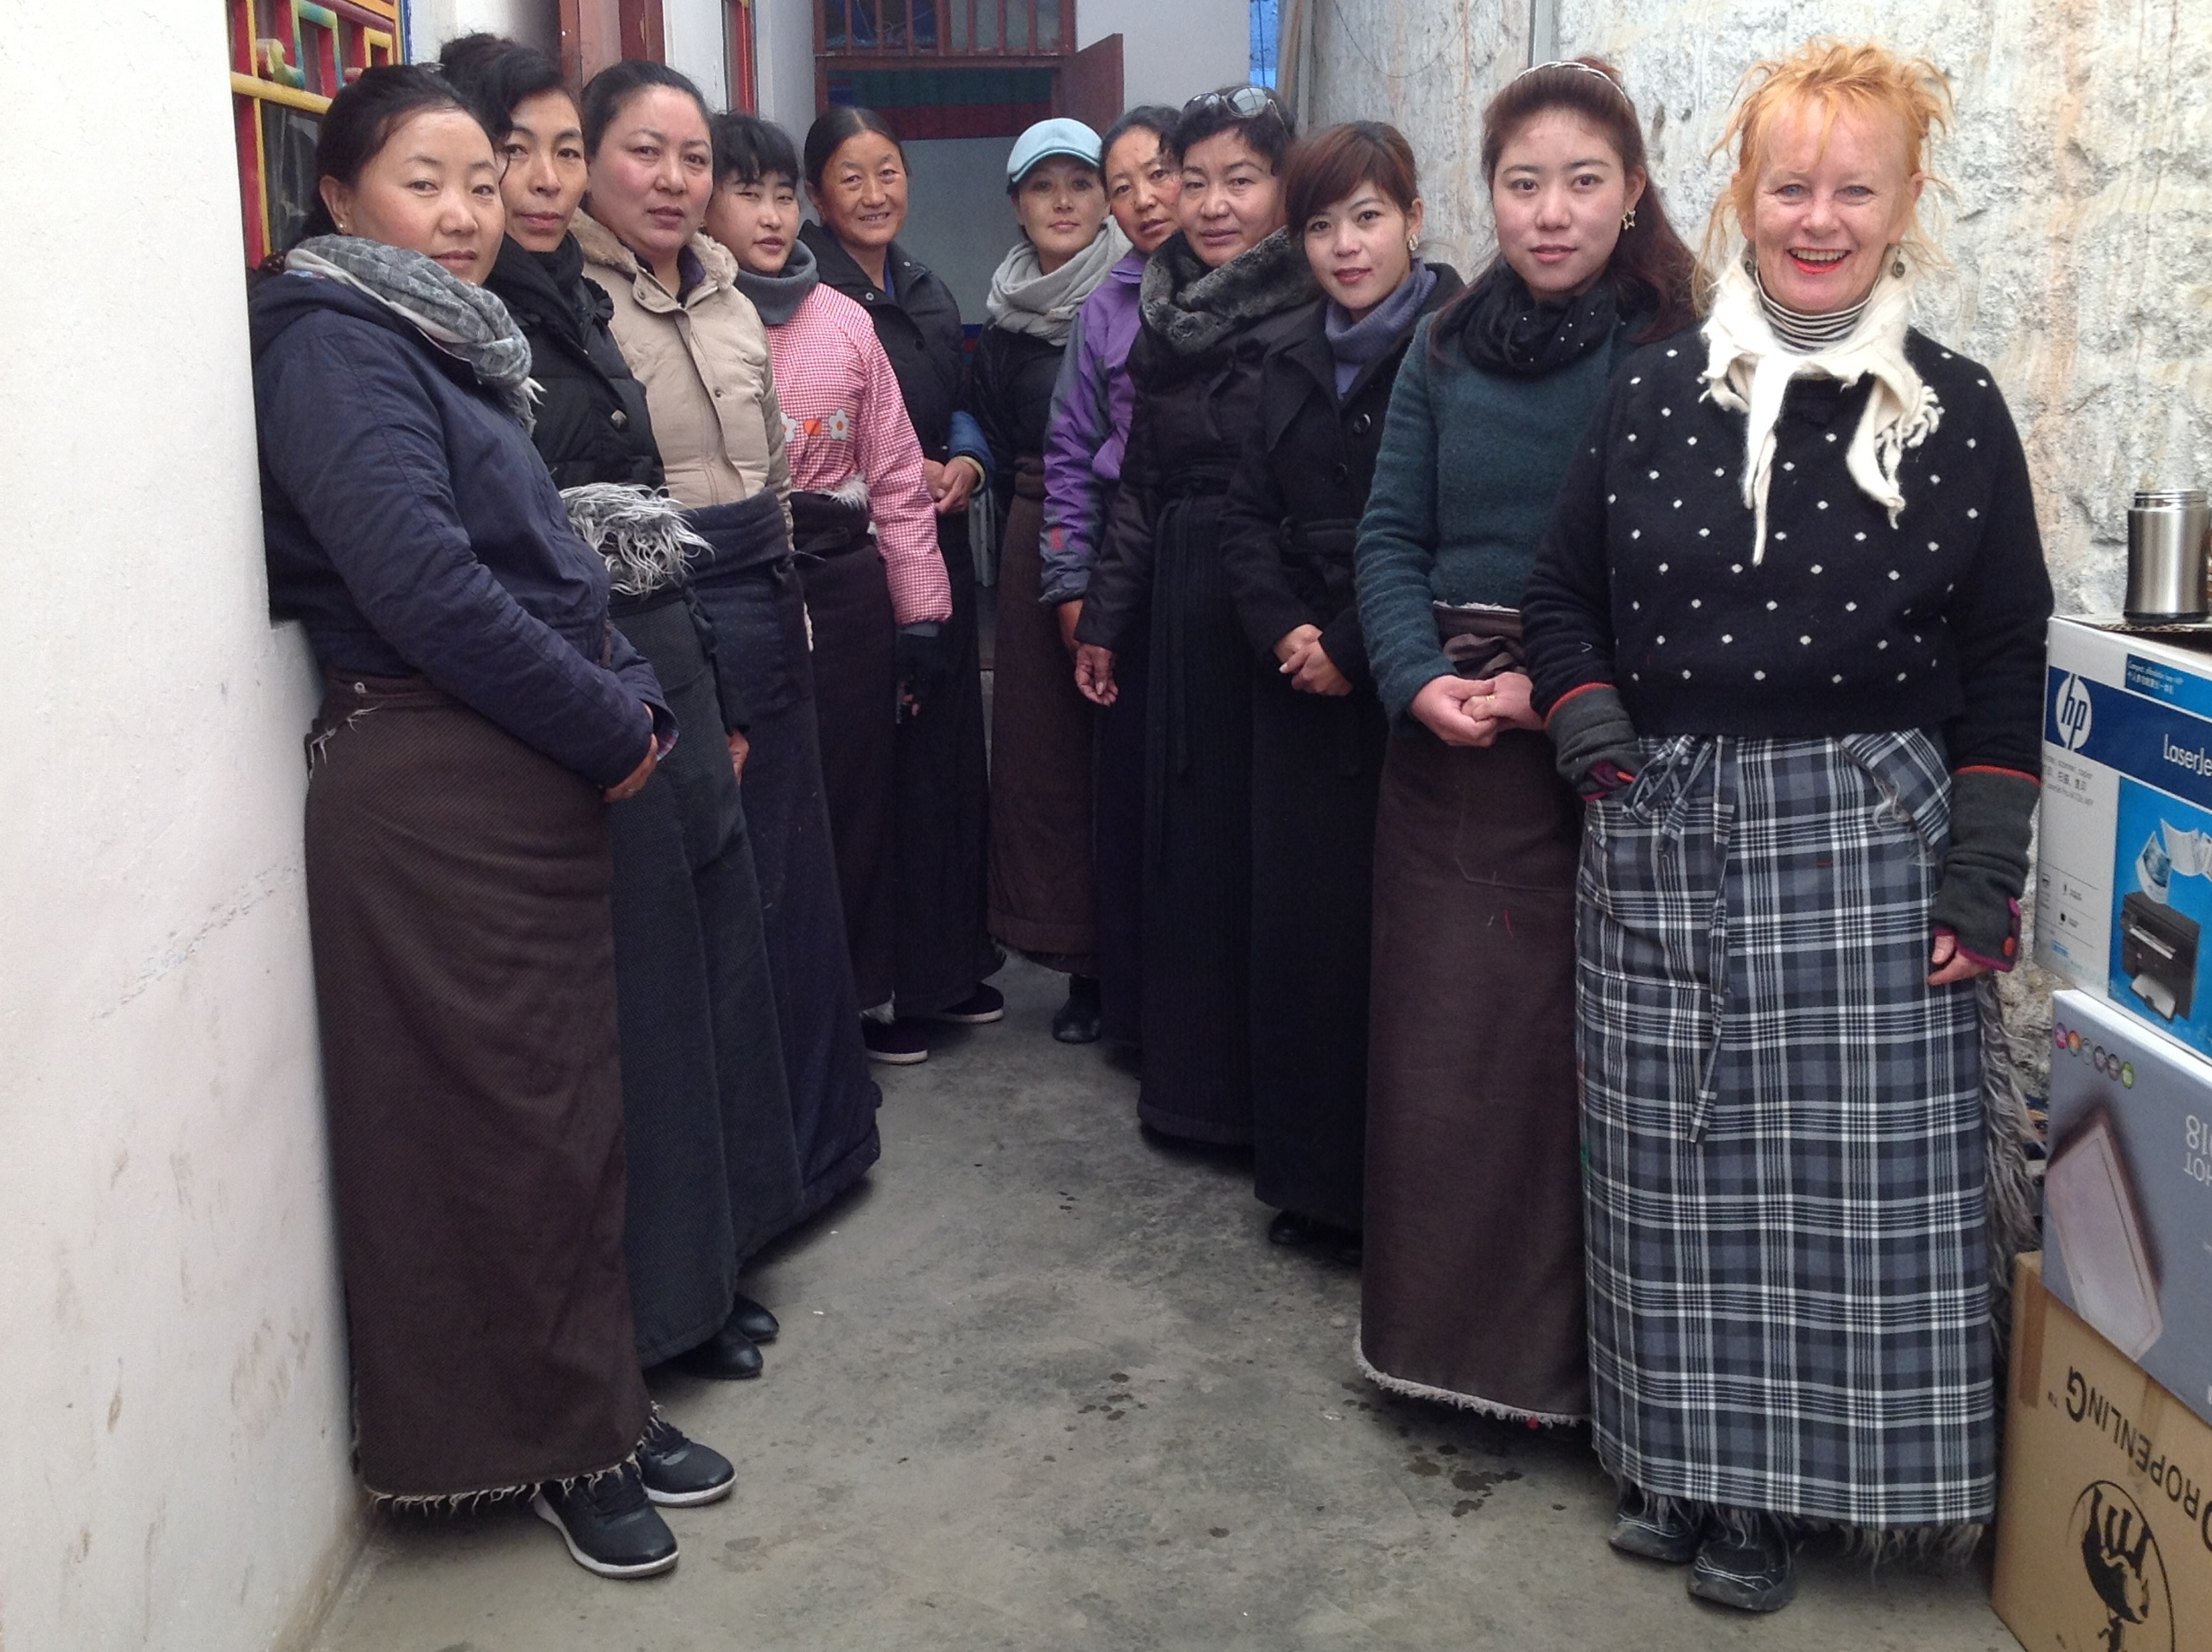 The tailors and I with our furry skirts. Lots of Tibetans have these on hand to wrap around them when they are sitting in chilly rooms. Then you take them off to go outside in the warm sun.